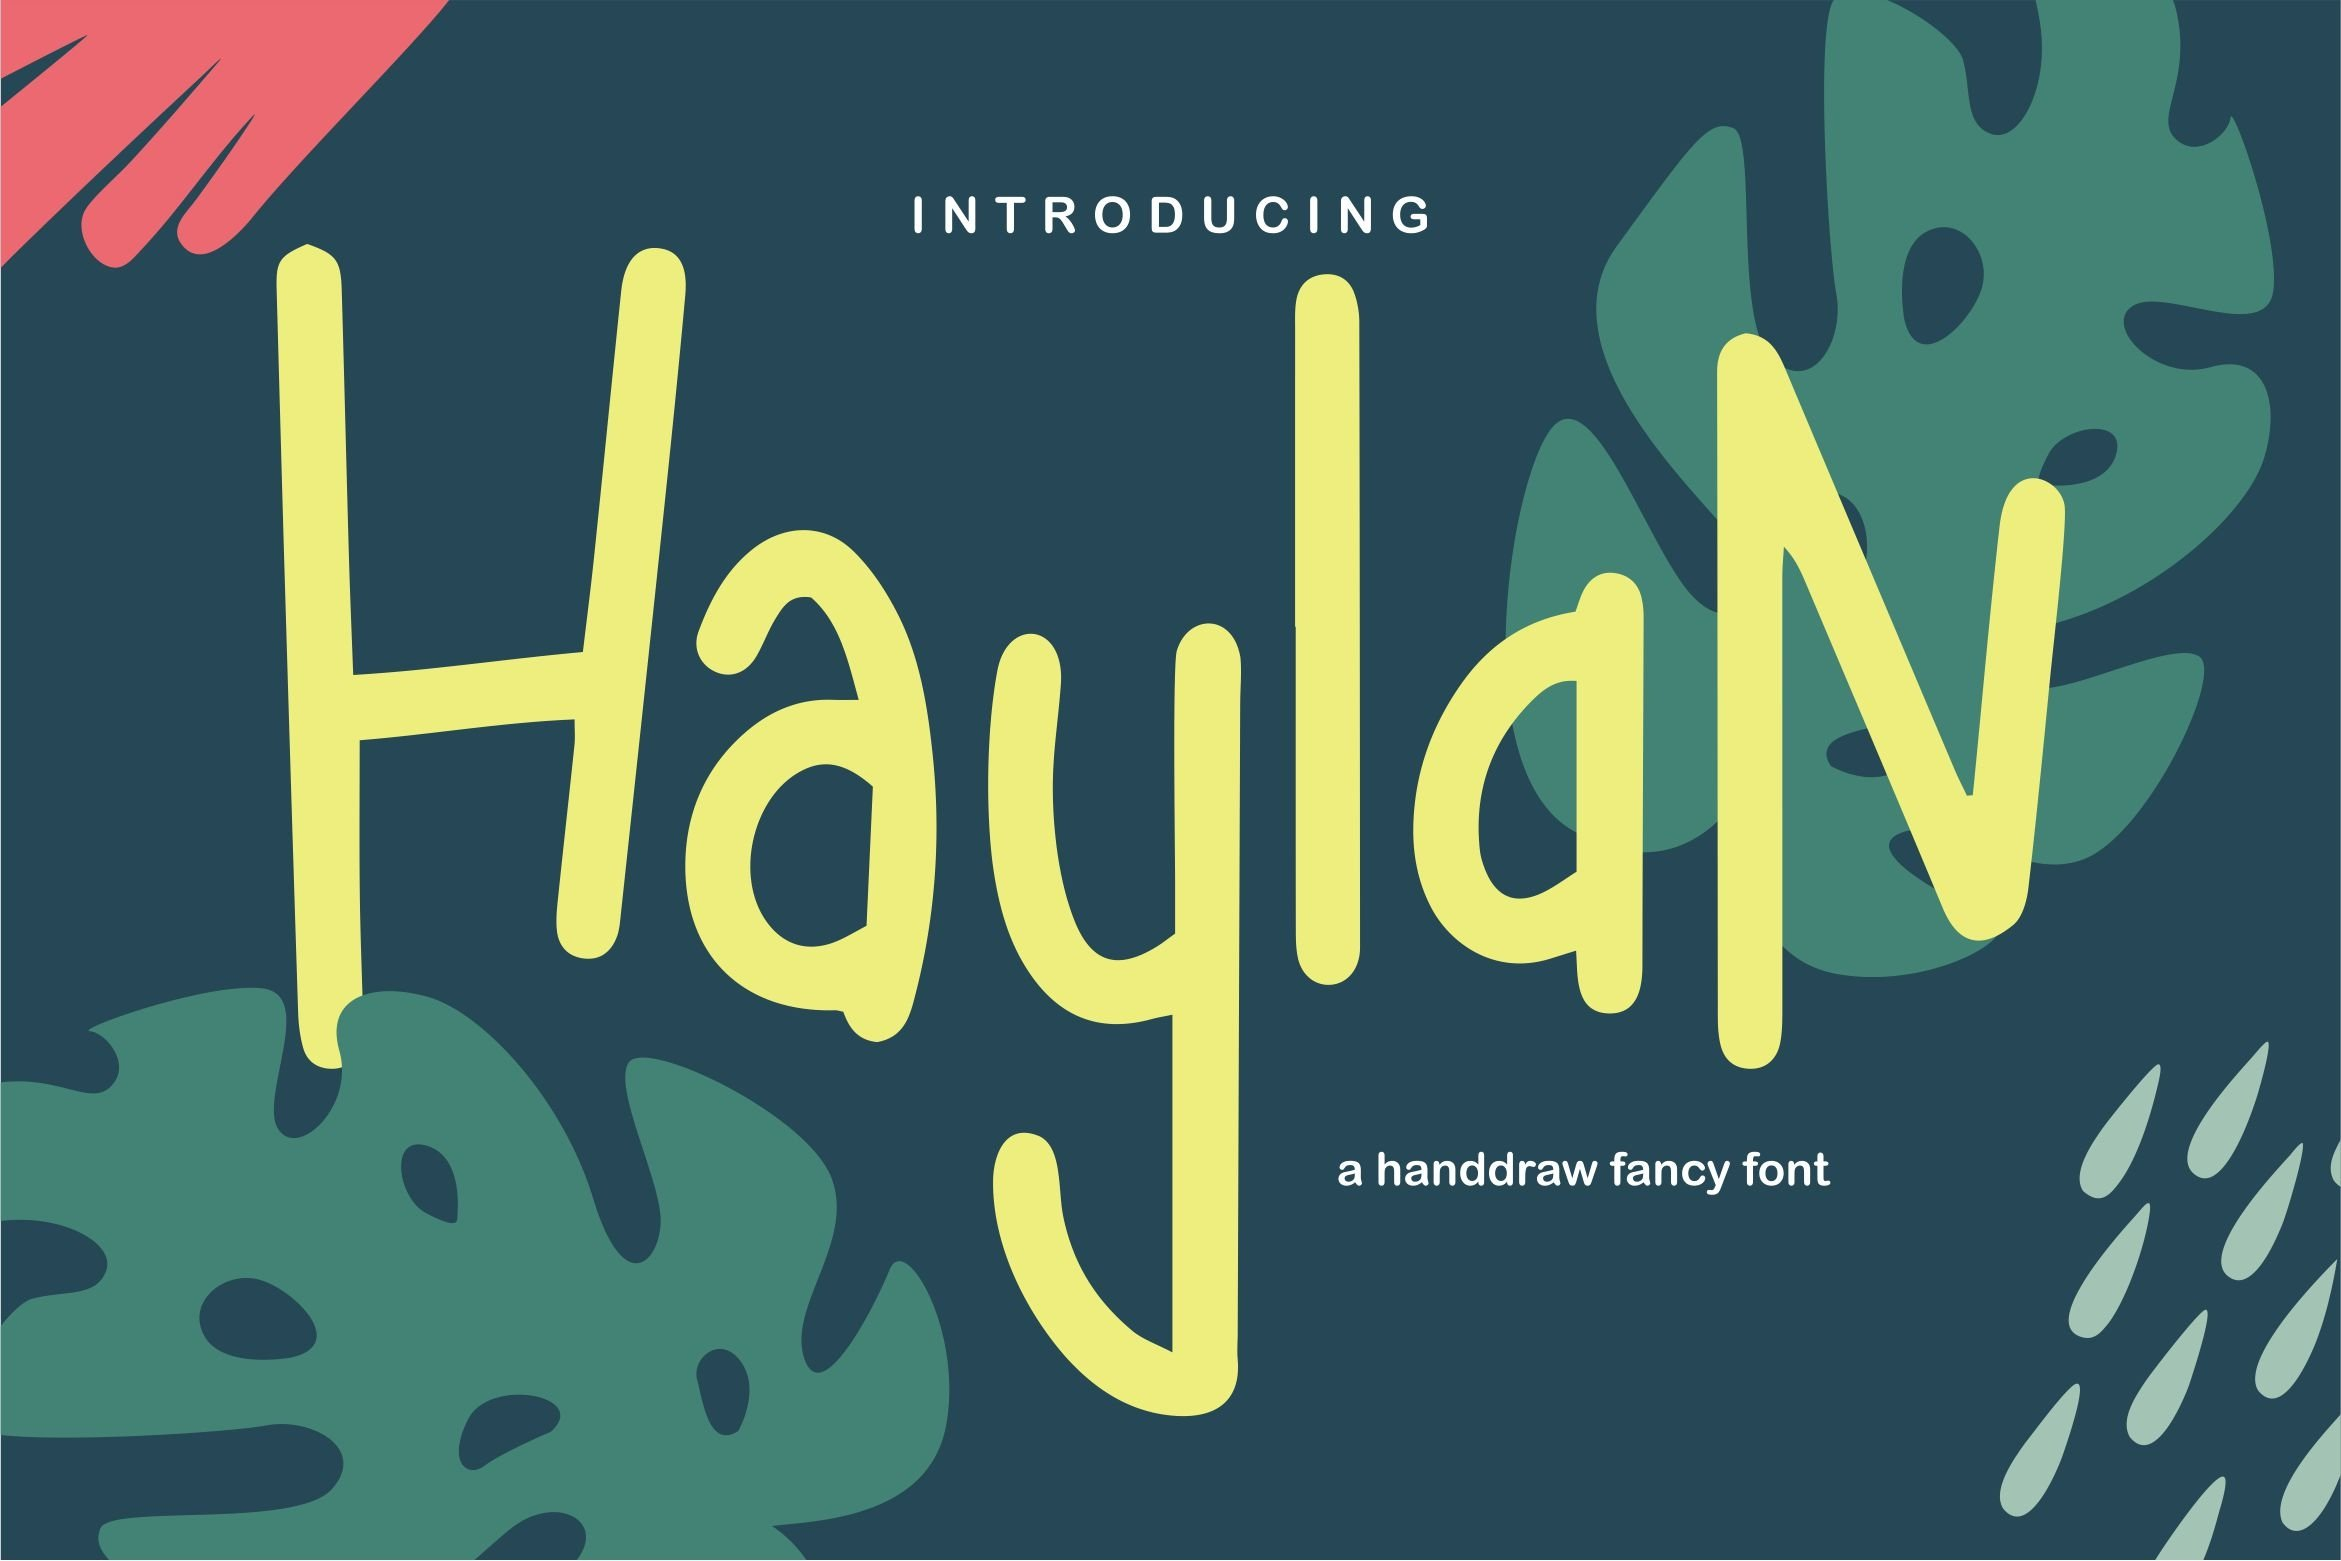 Haylan - A Handdraw Fancy Font example image 1